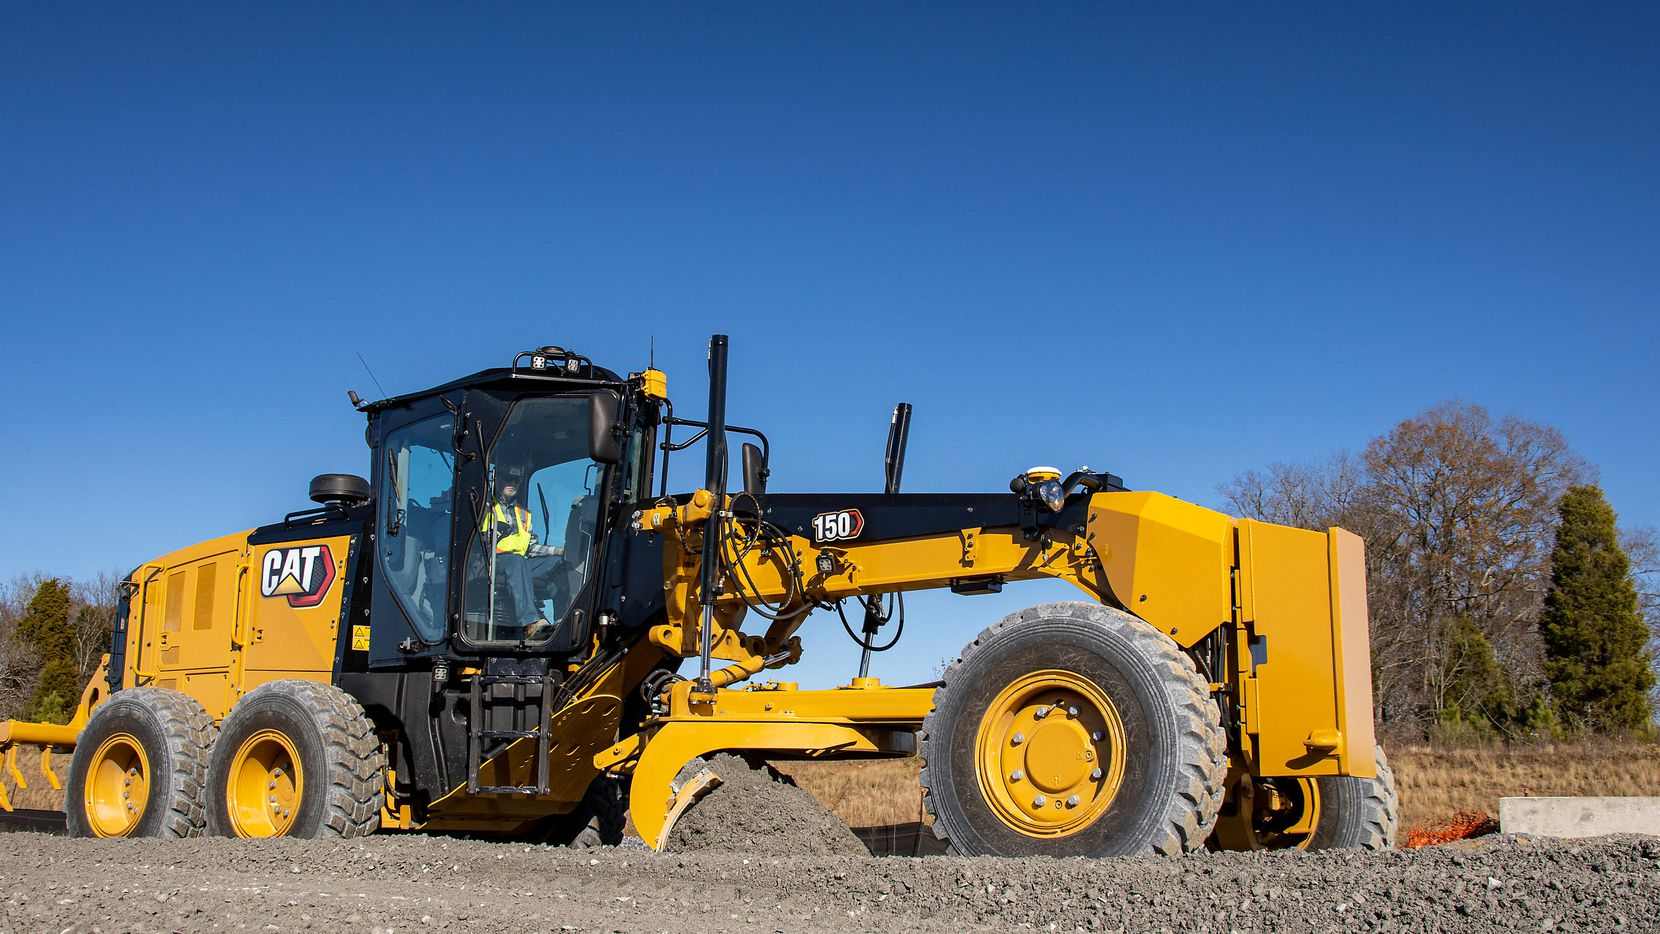 Caterpillar is one of the word's largest producers of construction and industrial equipment.